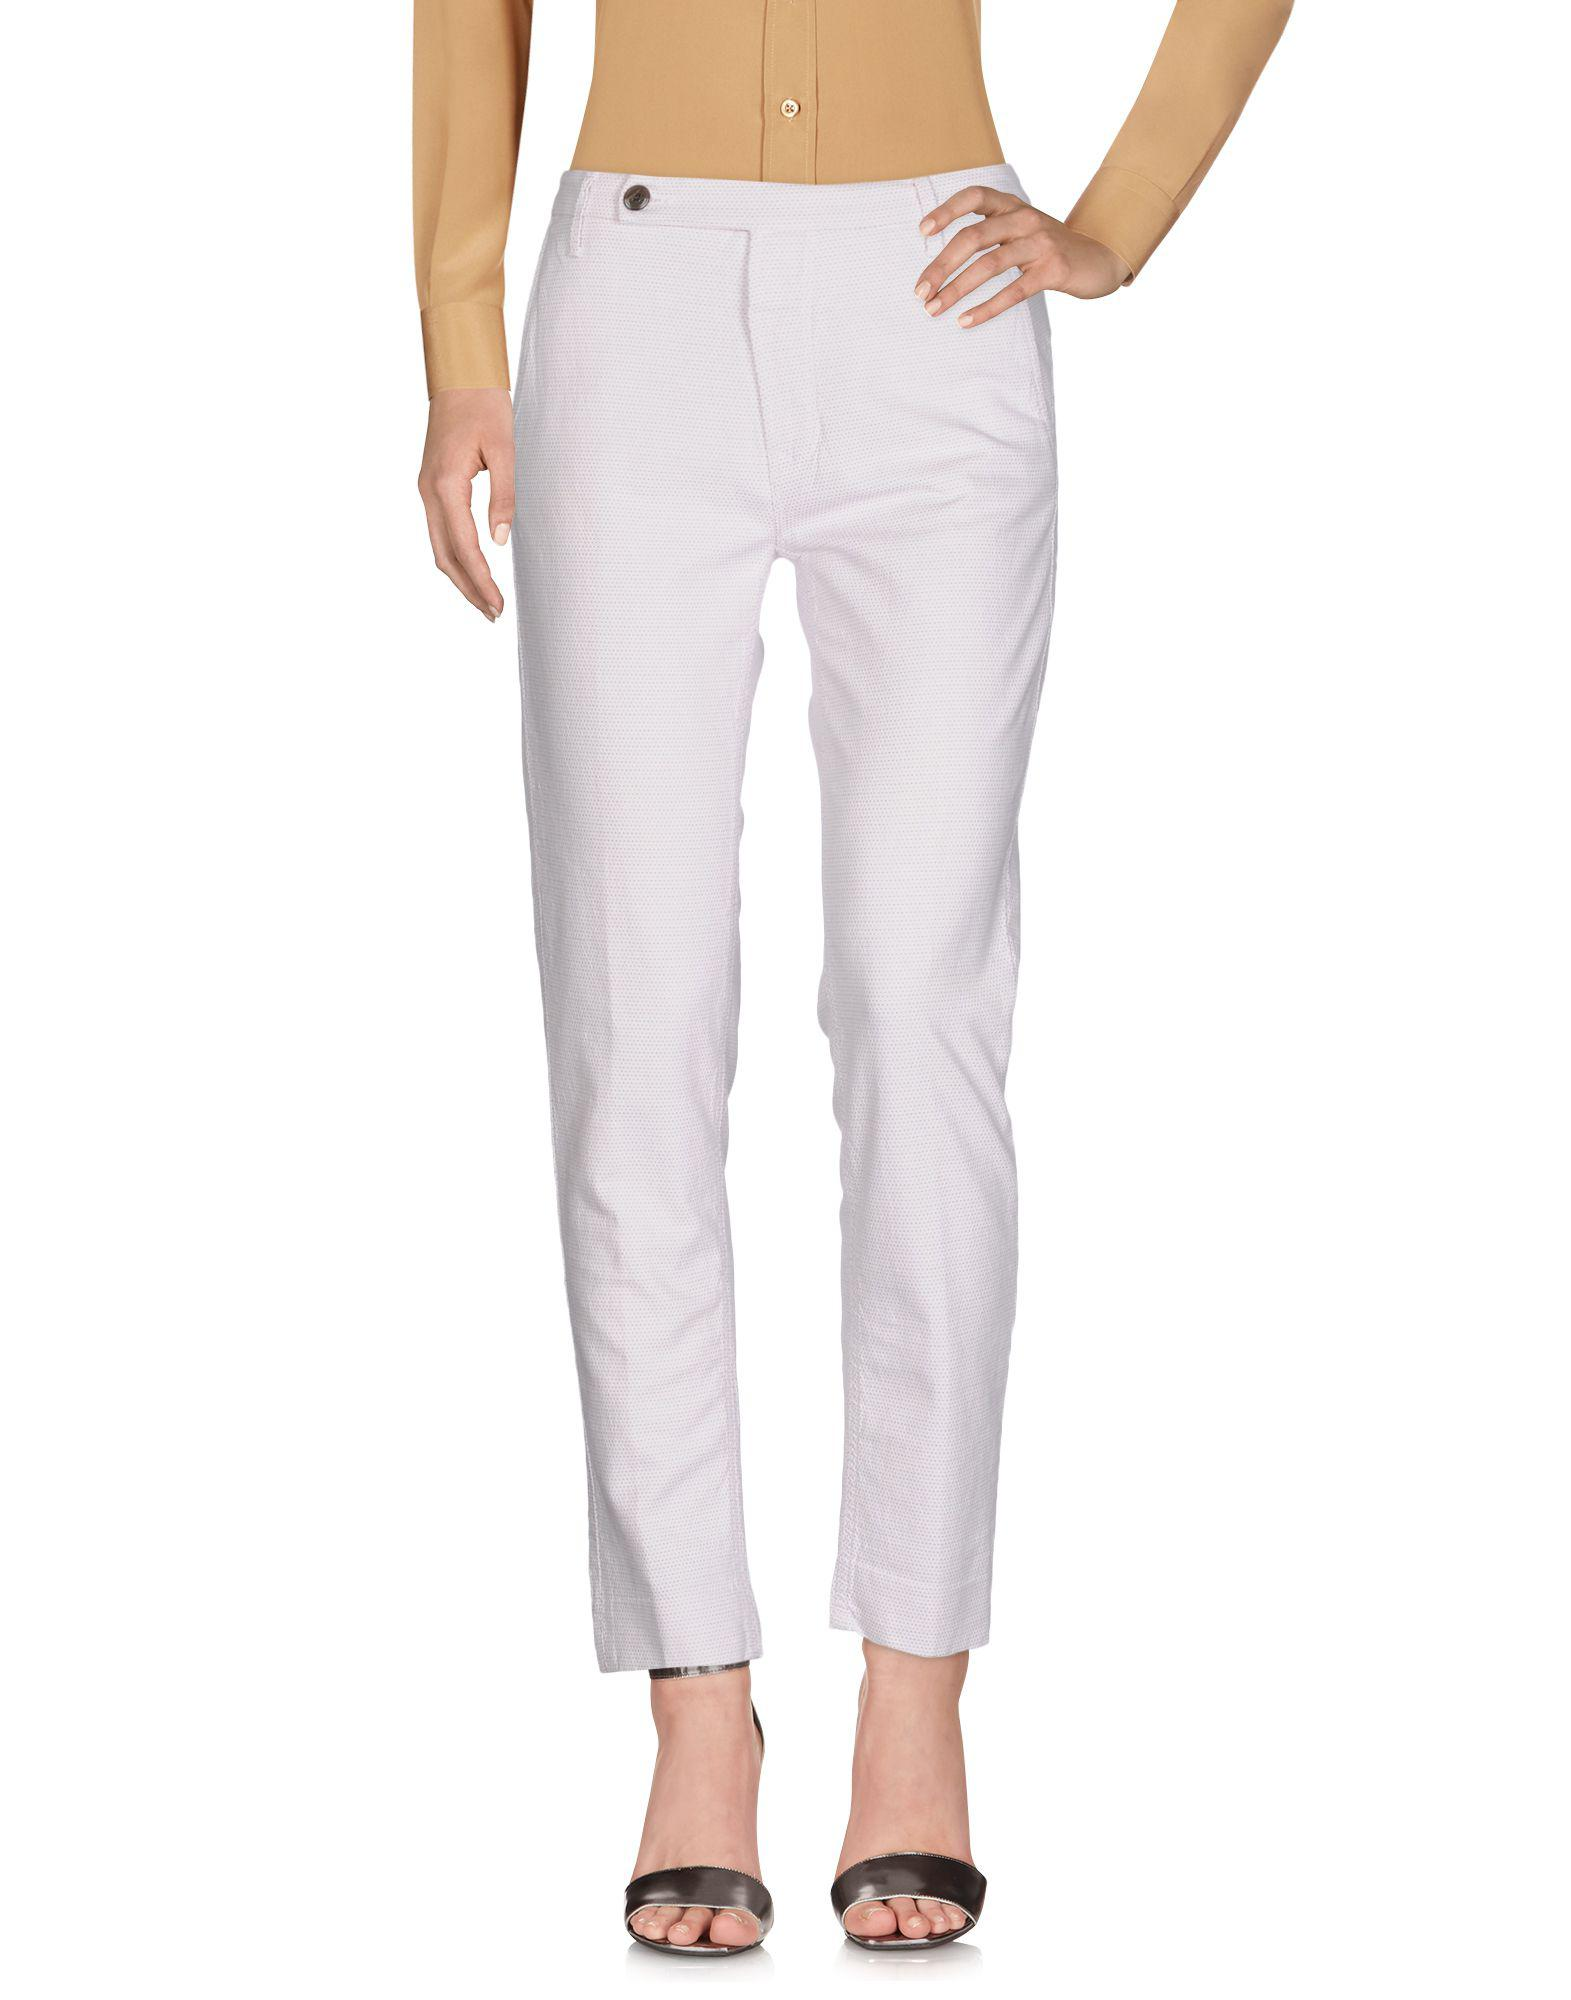 TROUSERS - Casual trousers Truenyc For Sale Online Store Outlet Low Shipping Outlet Amazon XGvxQr